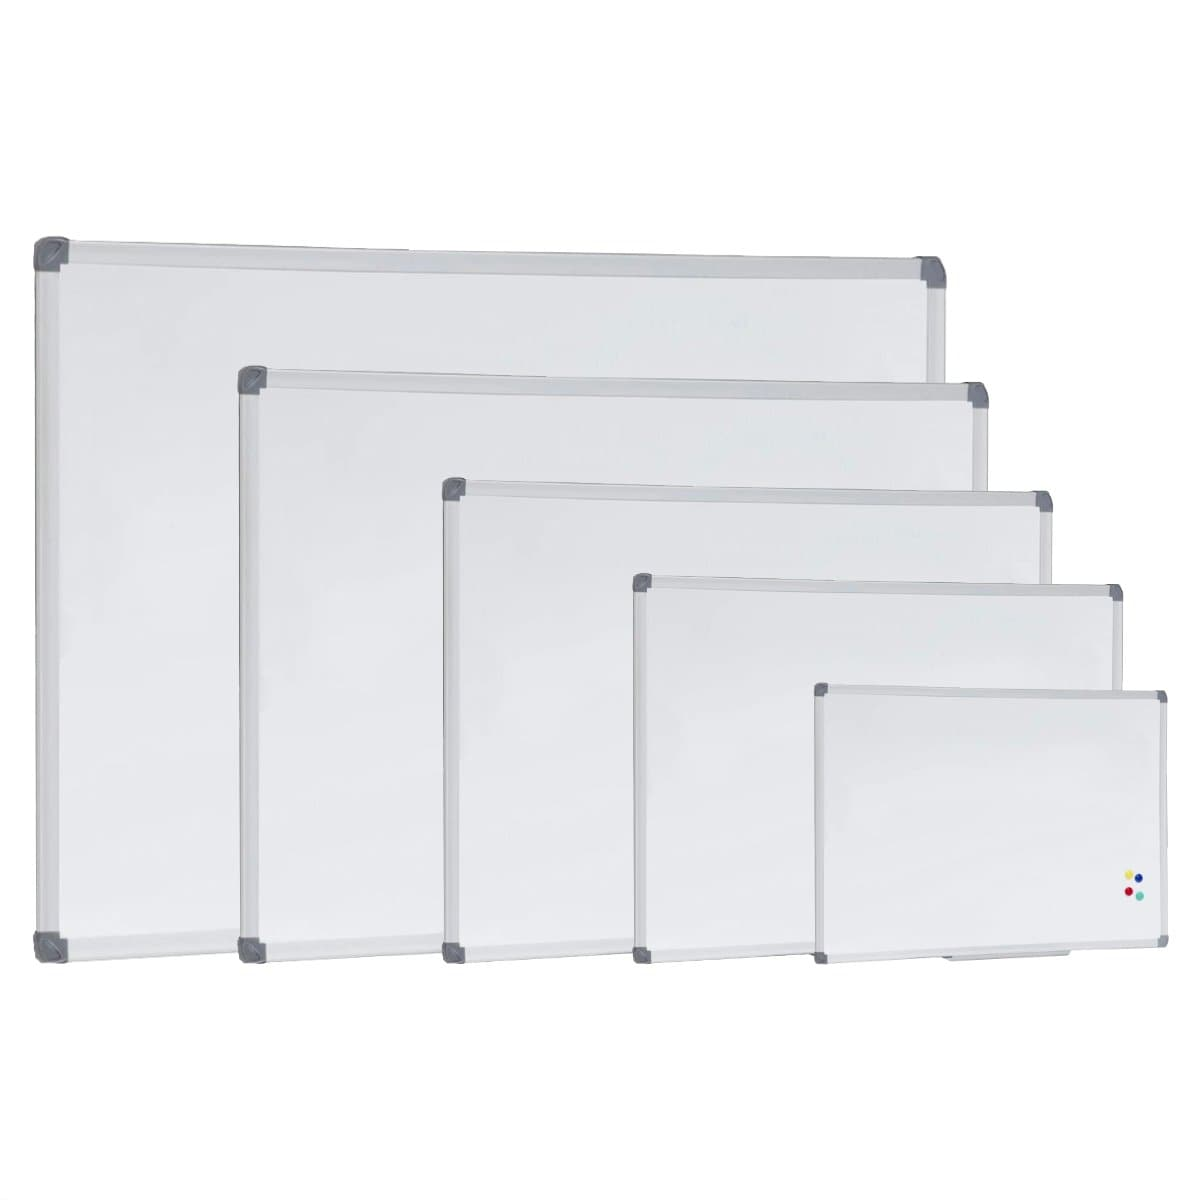 Magnetic White Board with Pen Tray, Aluminum Frame,  45 x 60 cm